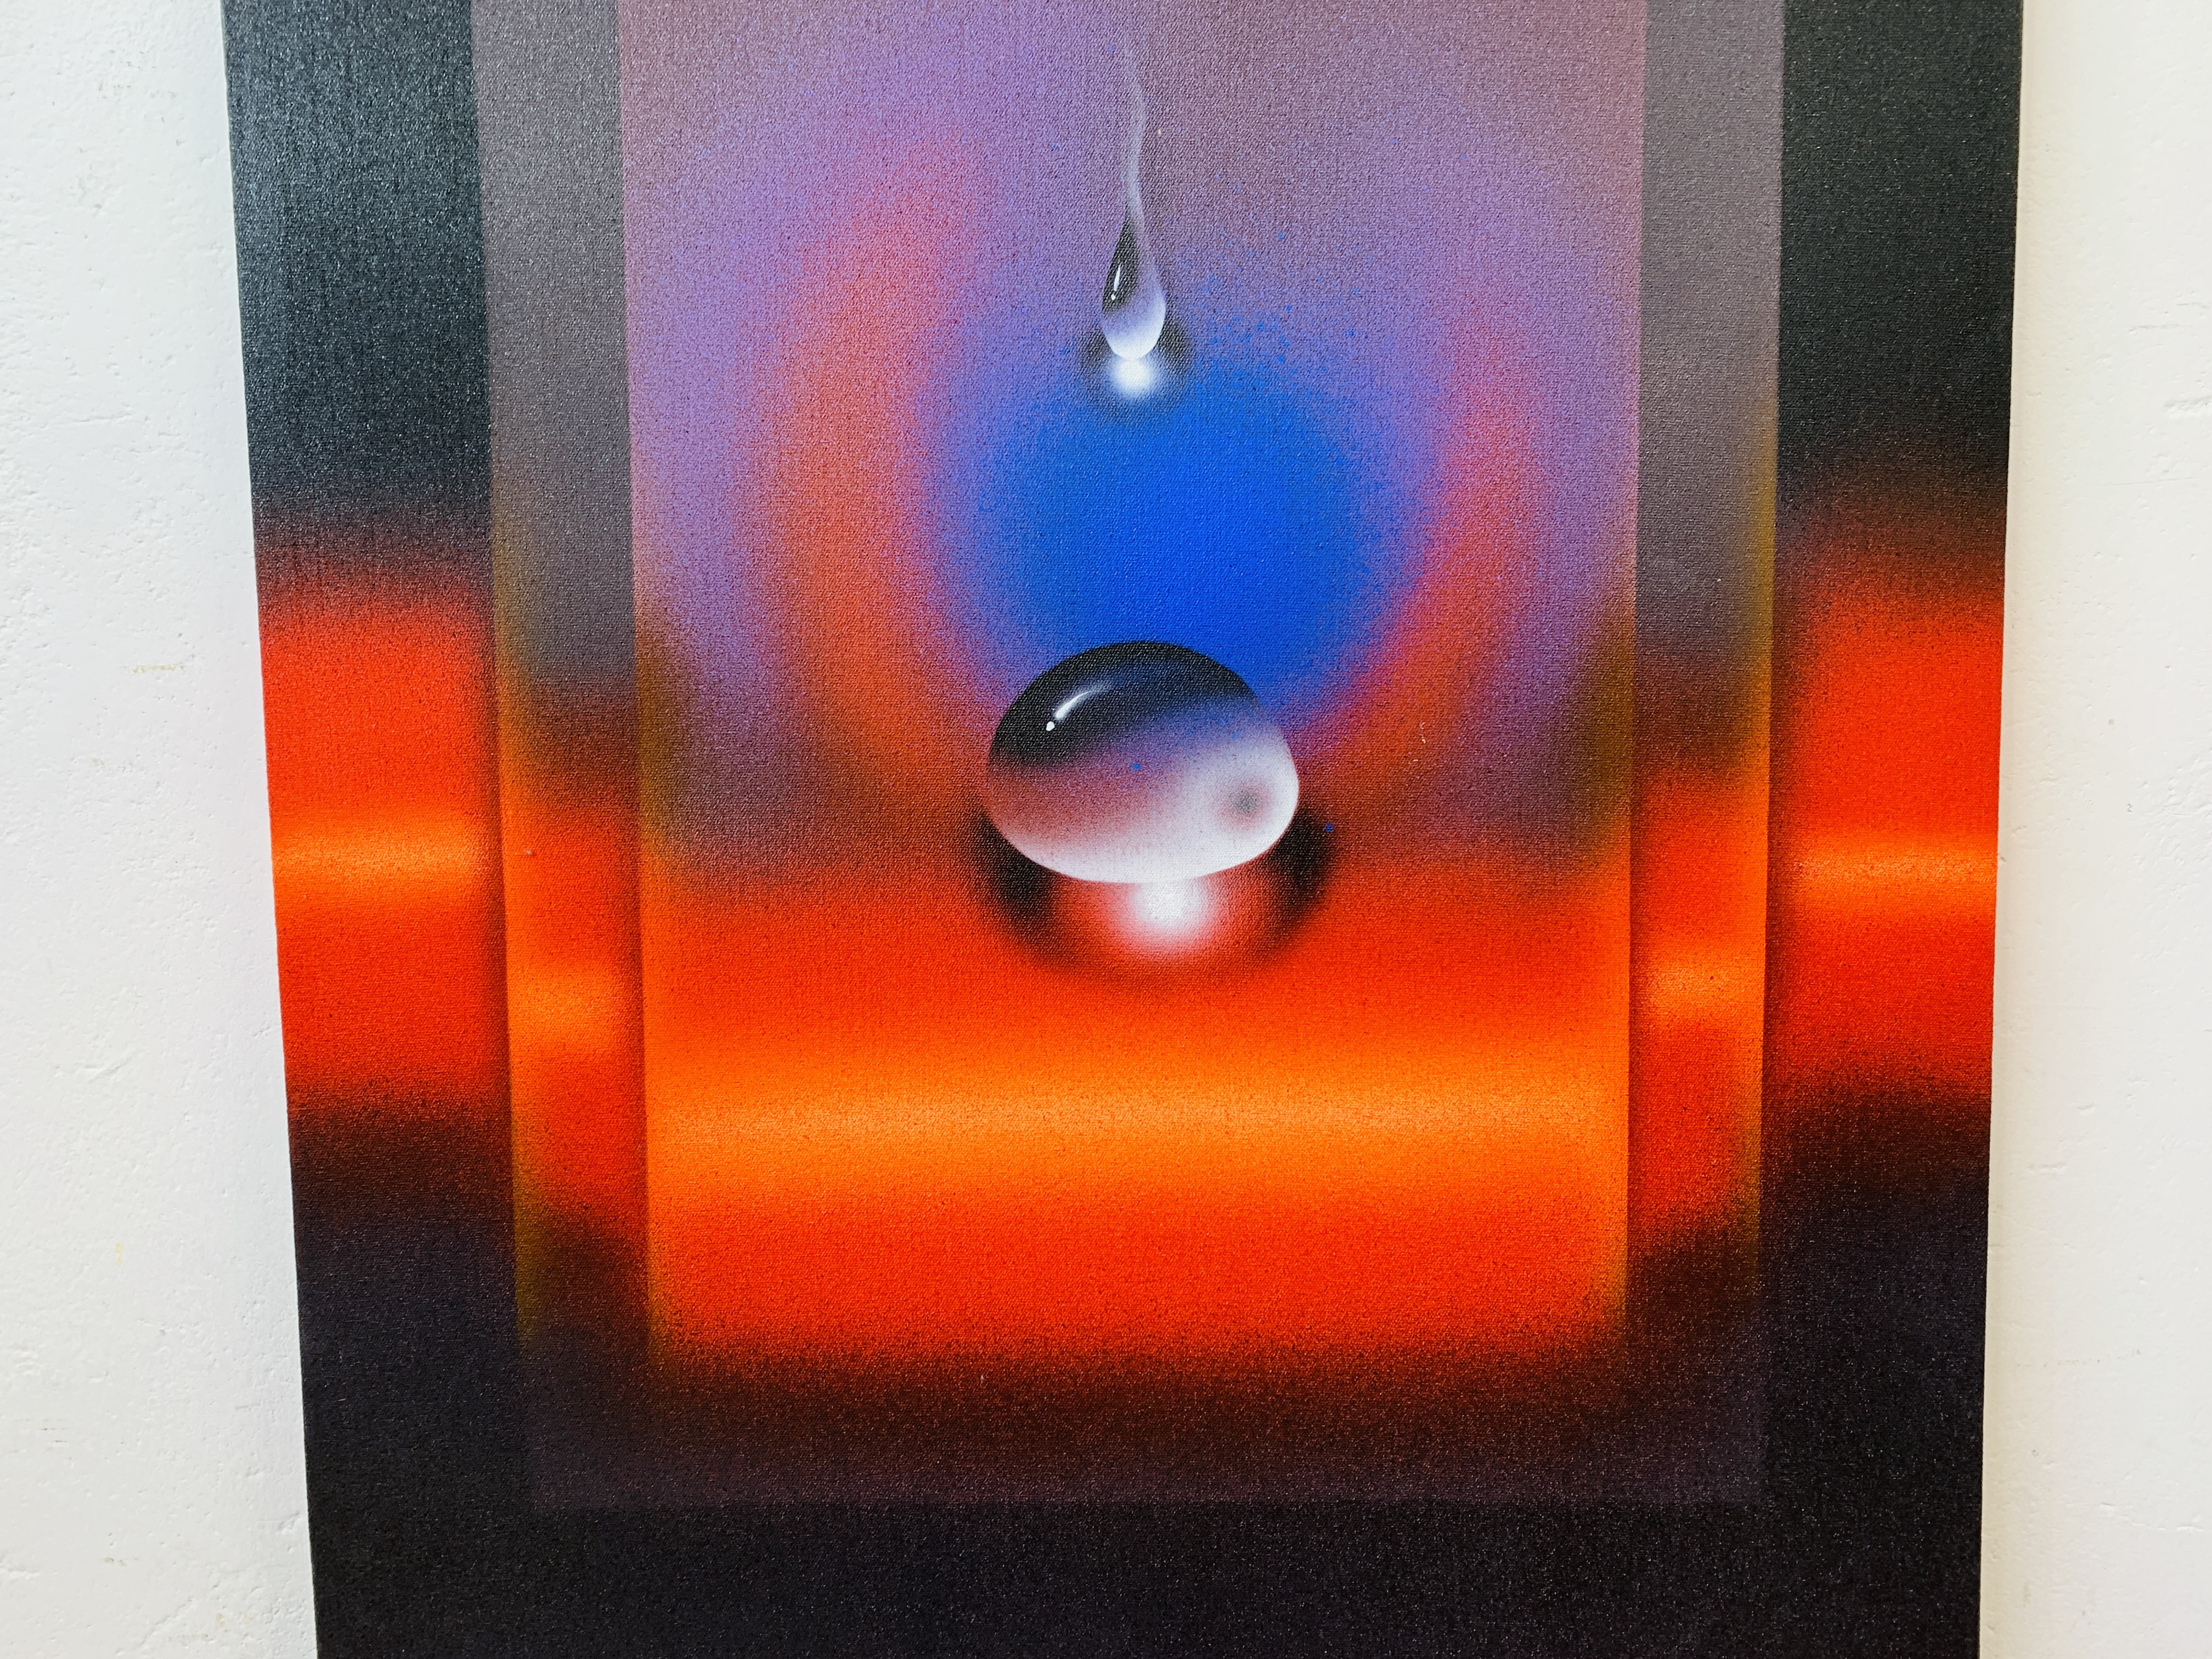 """QUINTANA - AN ABSTRACT OF A """"FALLING DROP"""" OIL ON CANVAS 80 X 60CM SIGNED AND DATED 05 - Image 3 of 6"""